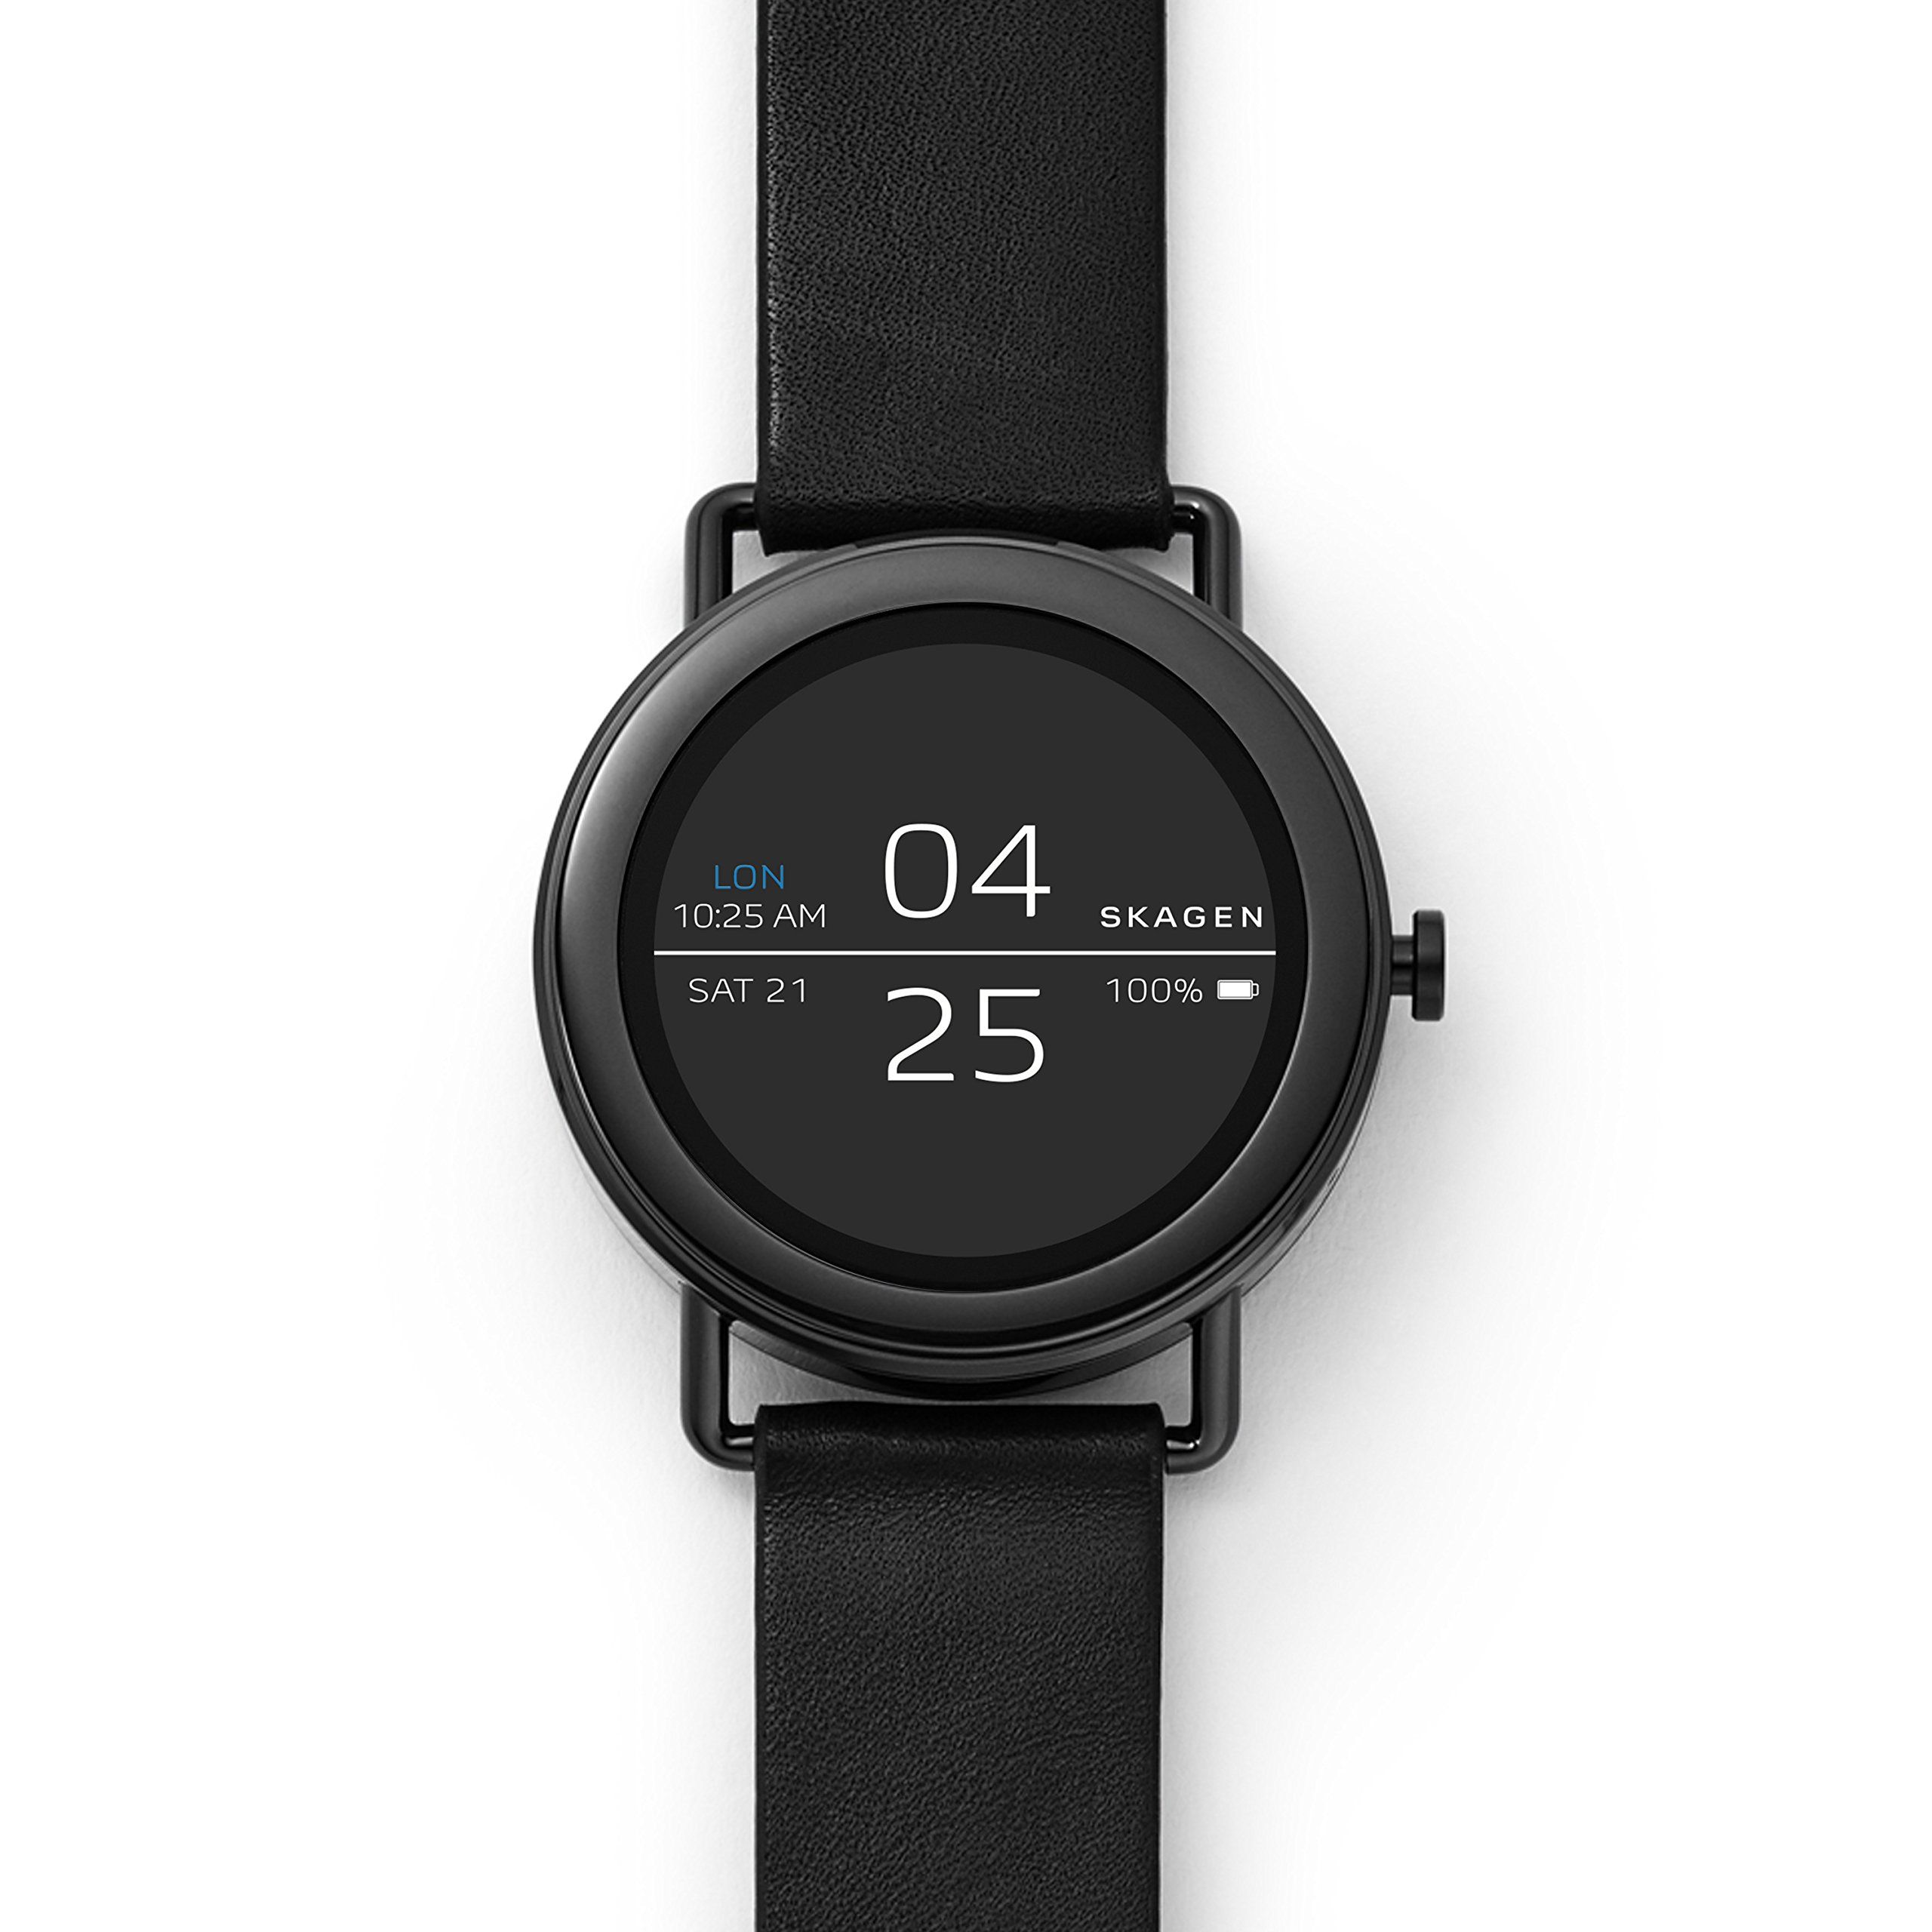 Skagen Connected Falster 1 Stainless Steel And Leather Touchscreen Smartwatch Color Black Model Skt5001 For More Infor Leather Straps Leather Smart Watch